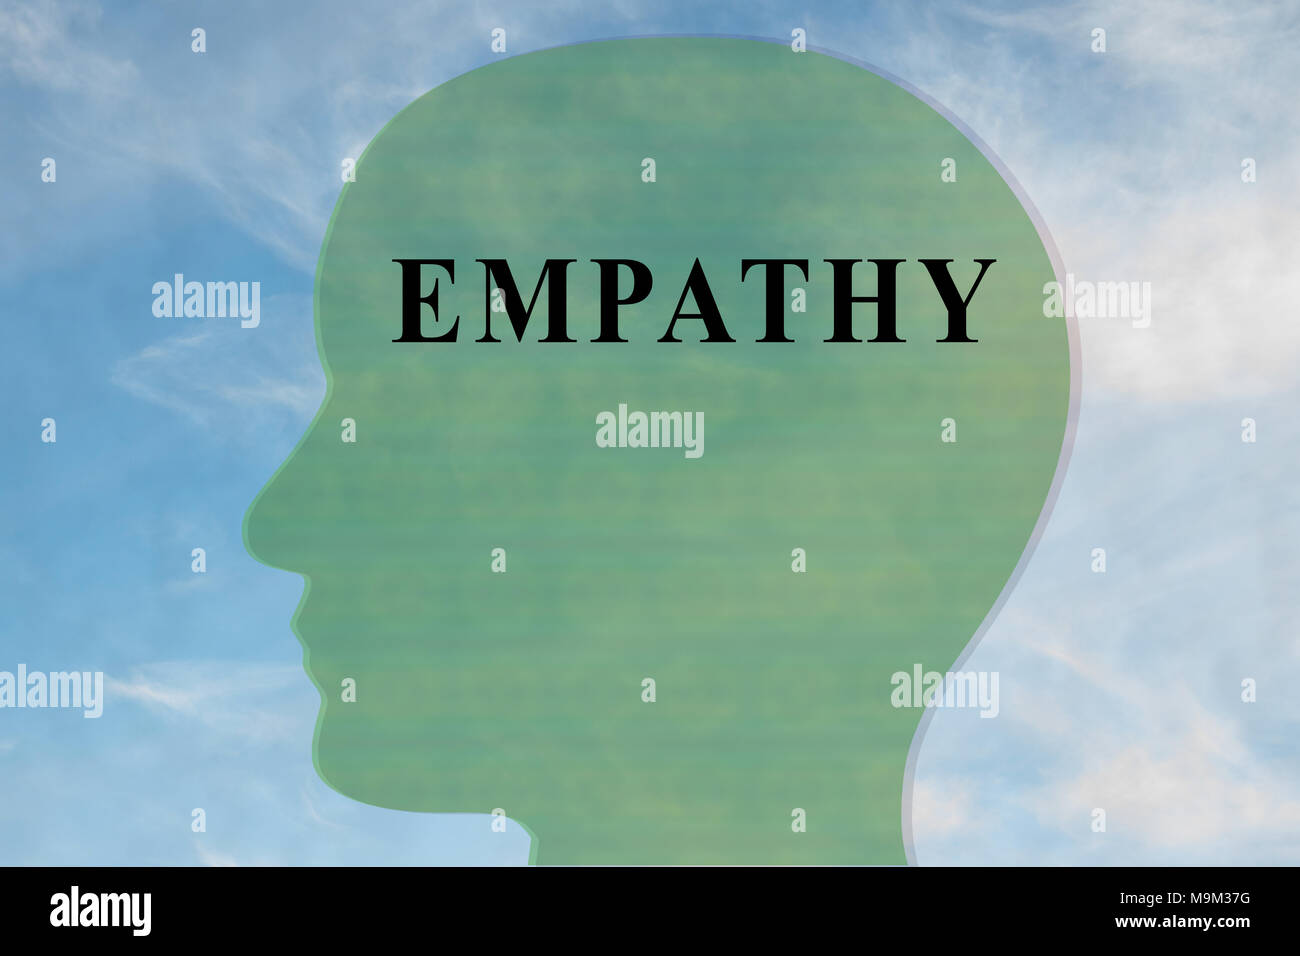 Render illustration of EMPATHY title on head silhouette, with cloudy sky as a background. - Stock Image